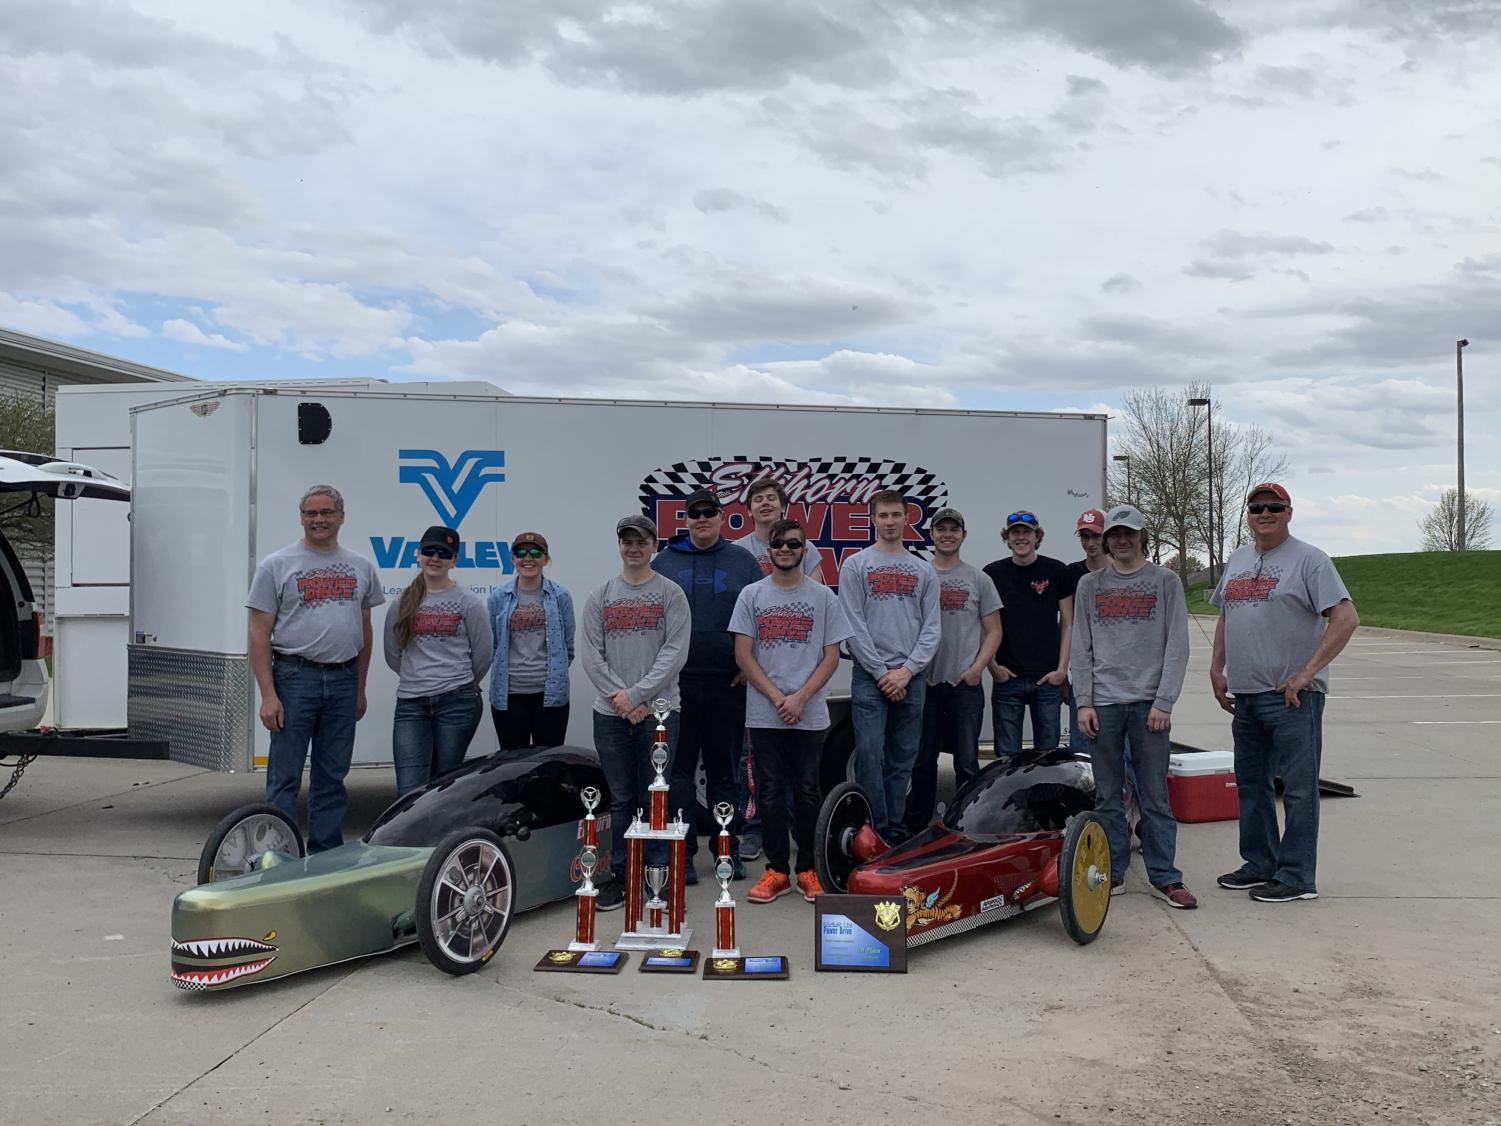 Members+of+the+Power+Drive+team+pose+with+their+cars+and+sponsors+after+securing+the+team%27s+4th+consecutive+championship.+The+team+is+a+co-op+with+Elkhorn+South.+